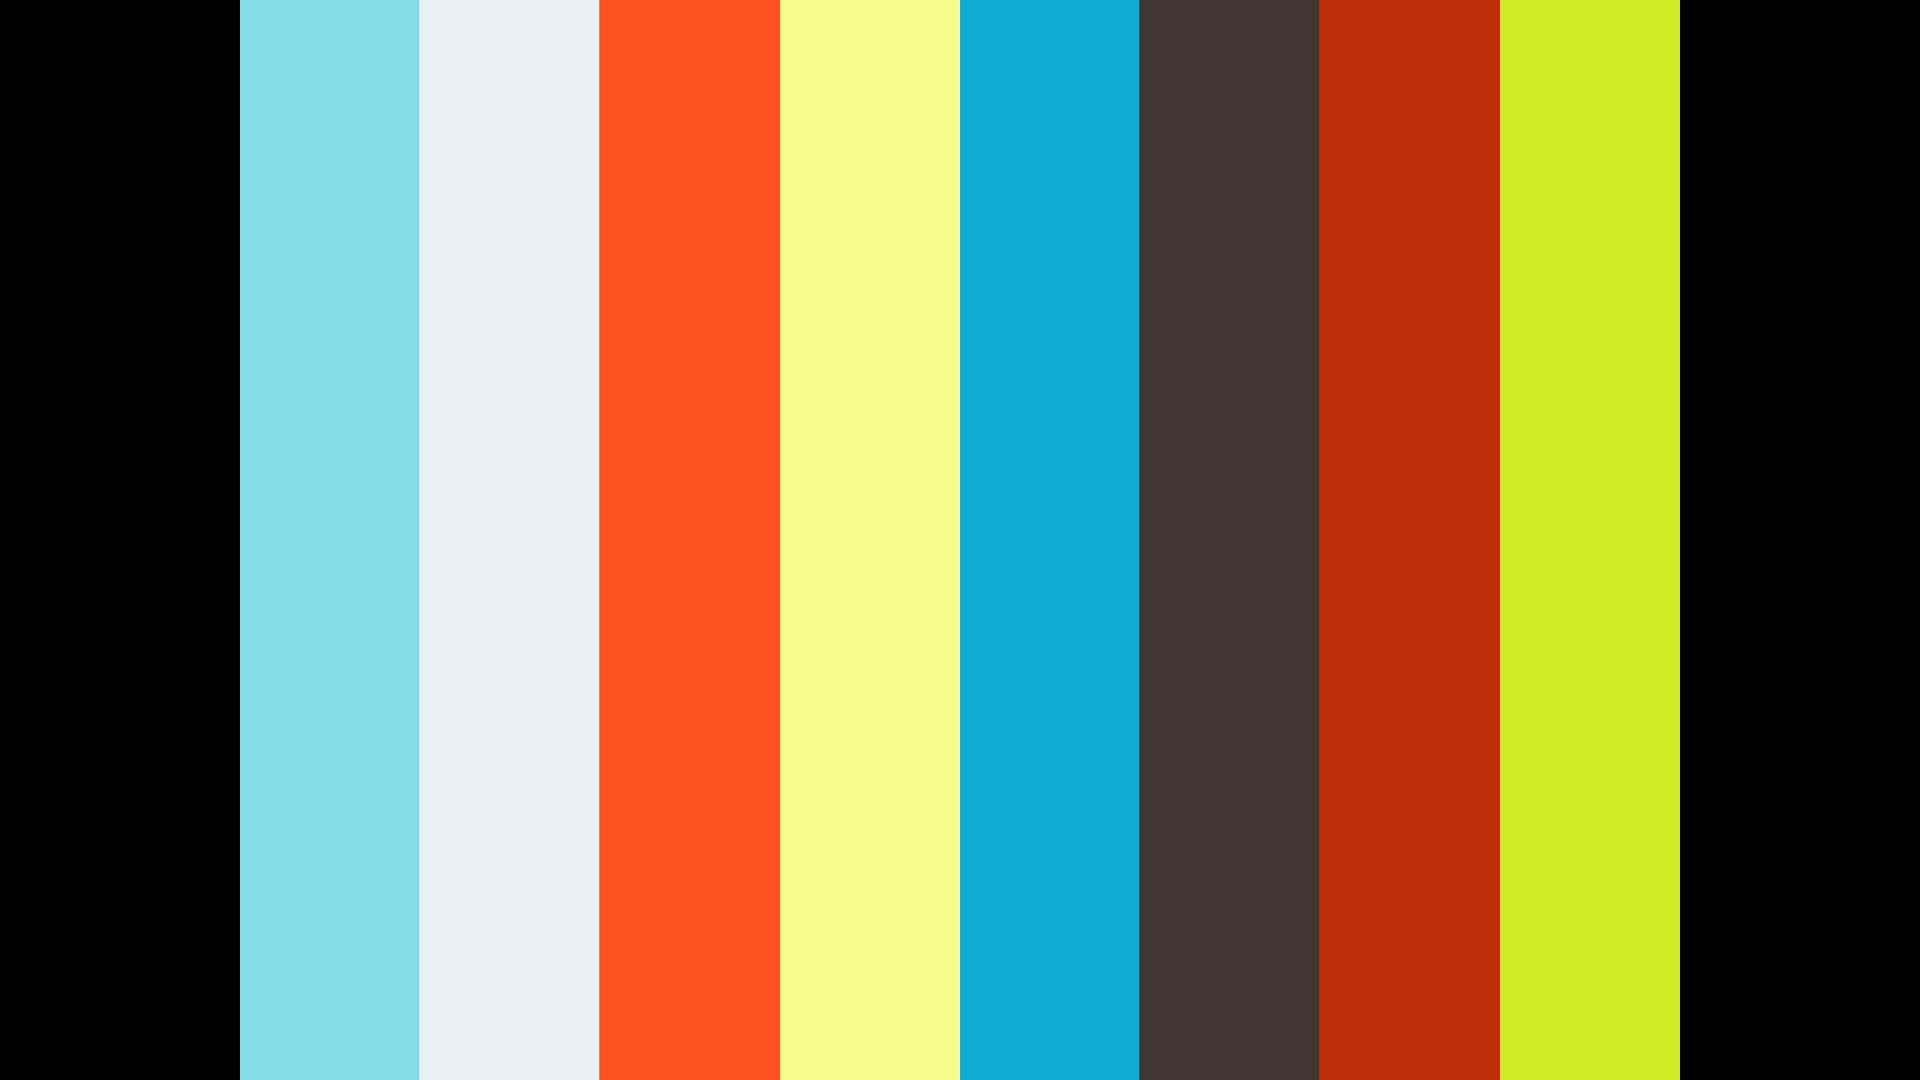 -SHIP: A VISUAL POEM